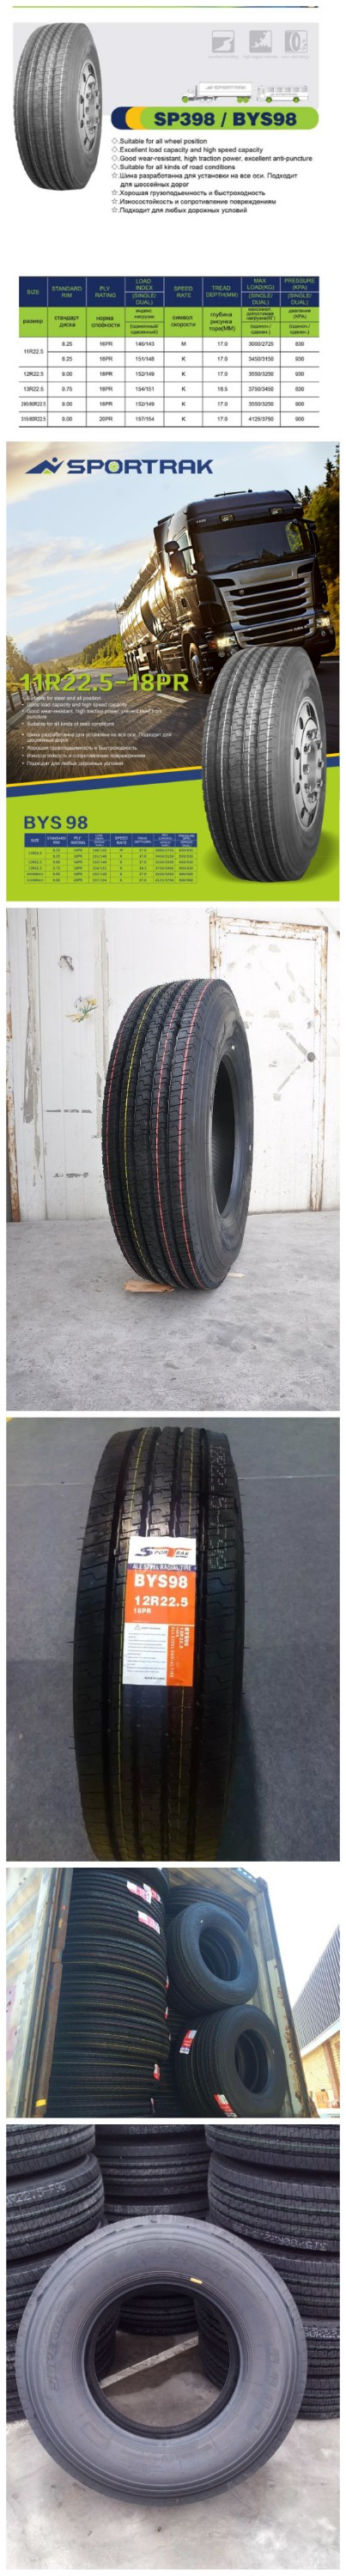 Sportrak Tire BS98 SP398 315/80R22.5 12R22.5 11R22.5 China factory truck tyres bus tyre